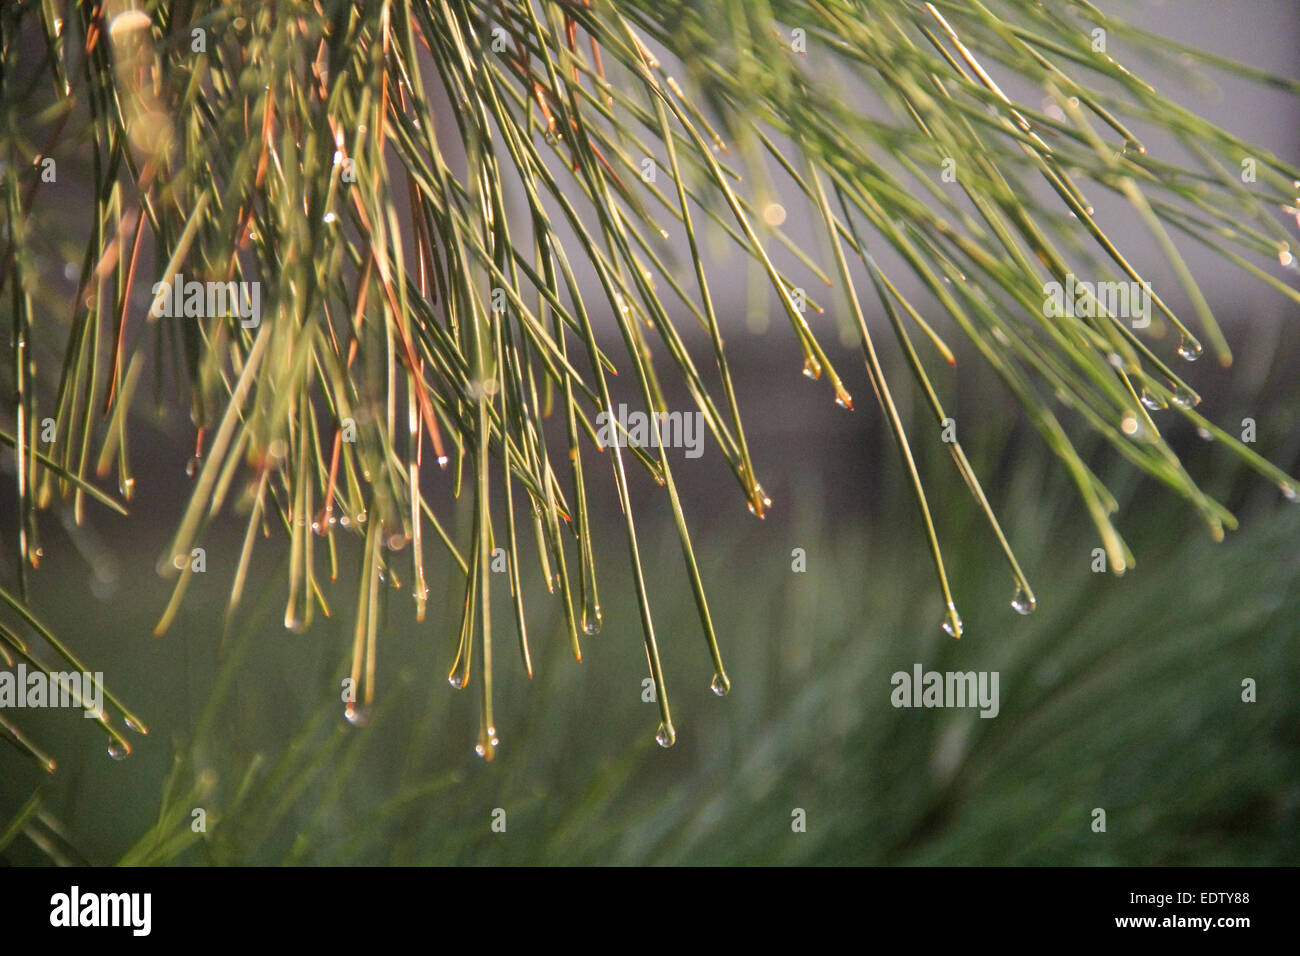 Sun caught in water drops clinging to pine needles after a light afternoon shower. - Stock Image